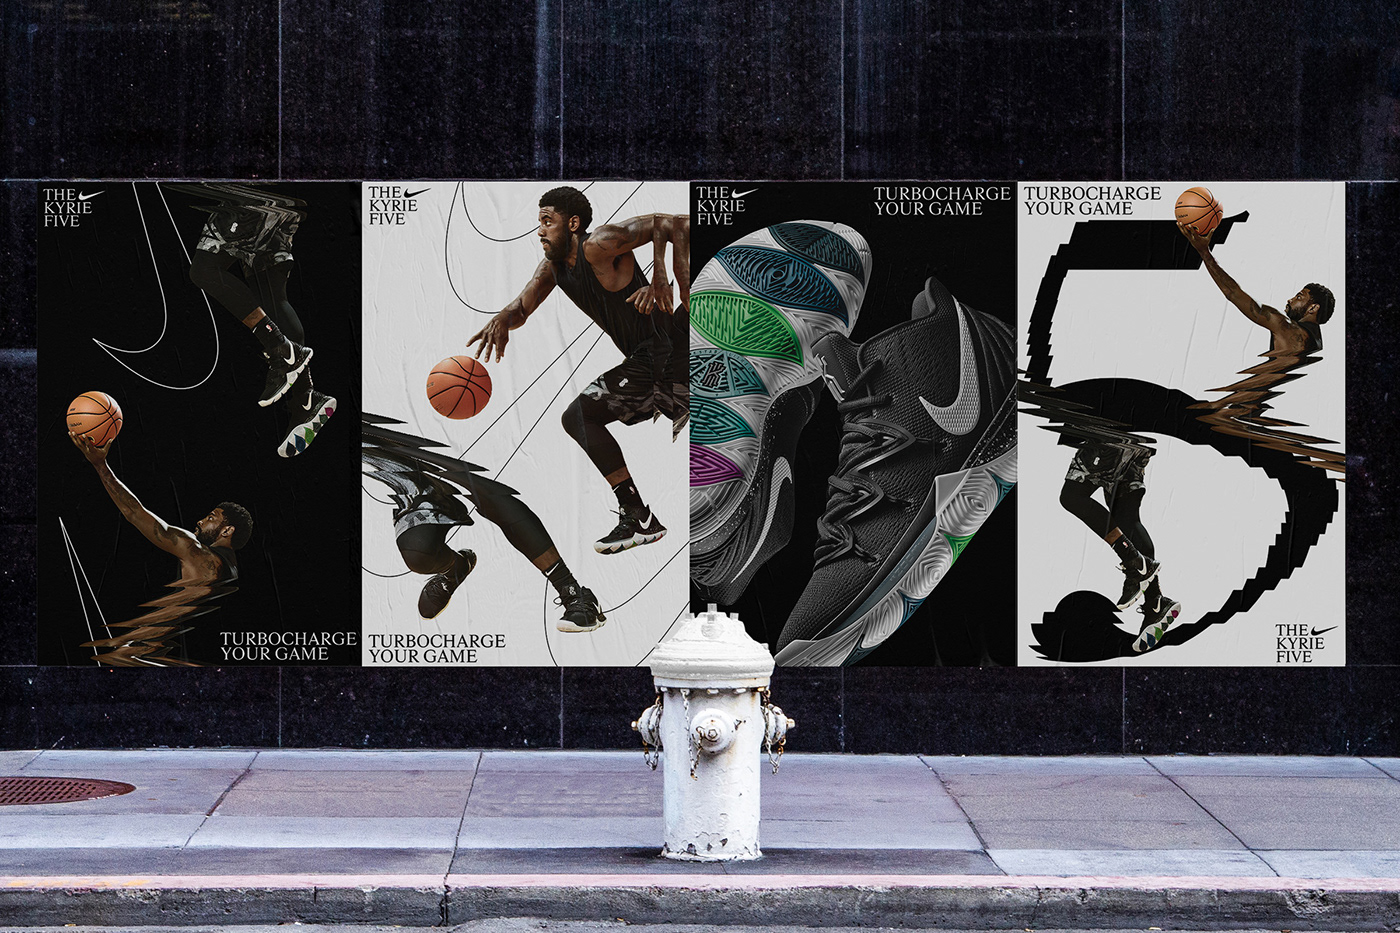 Nike kyrie irving kyrie 5 nike basketball The New Company design system Glitch typography